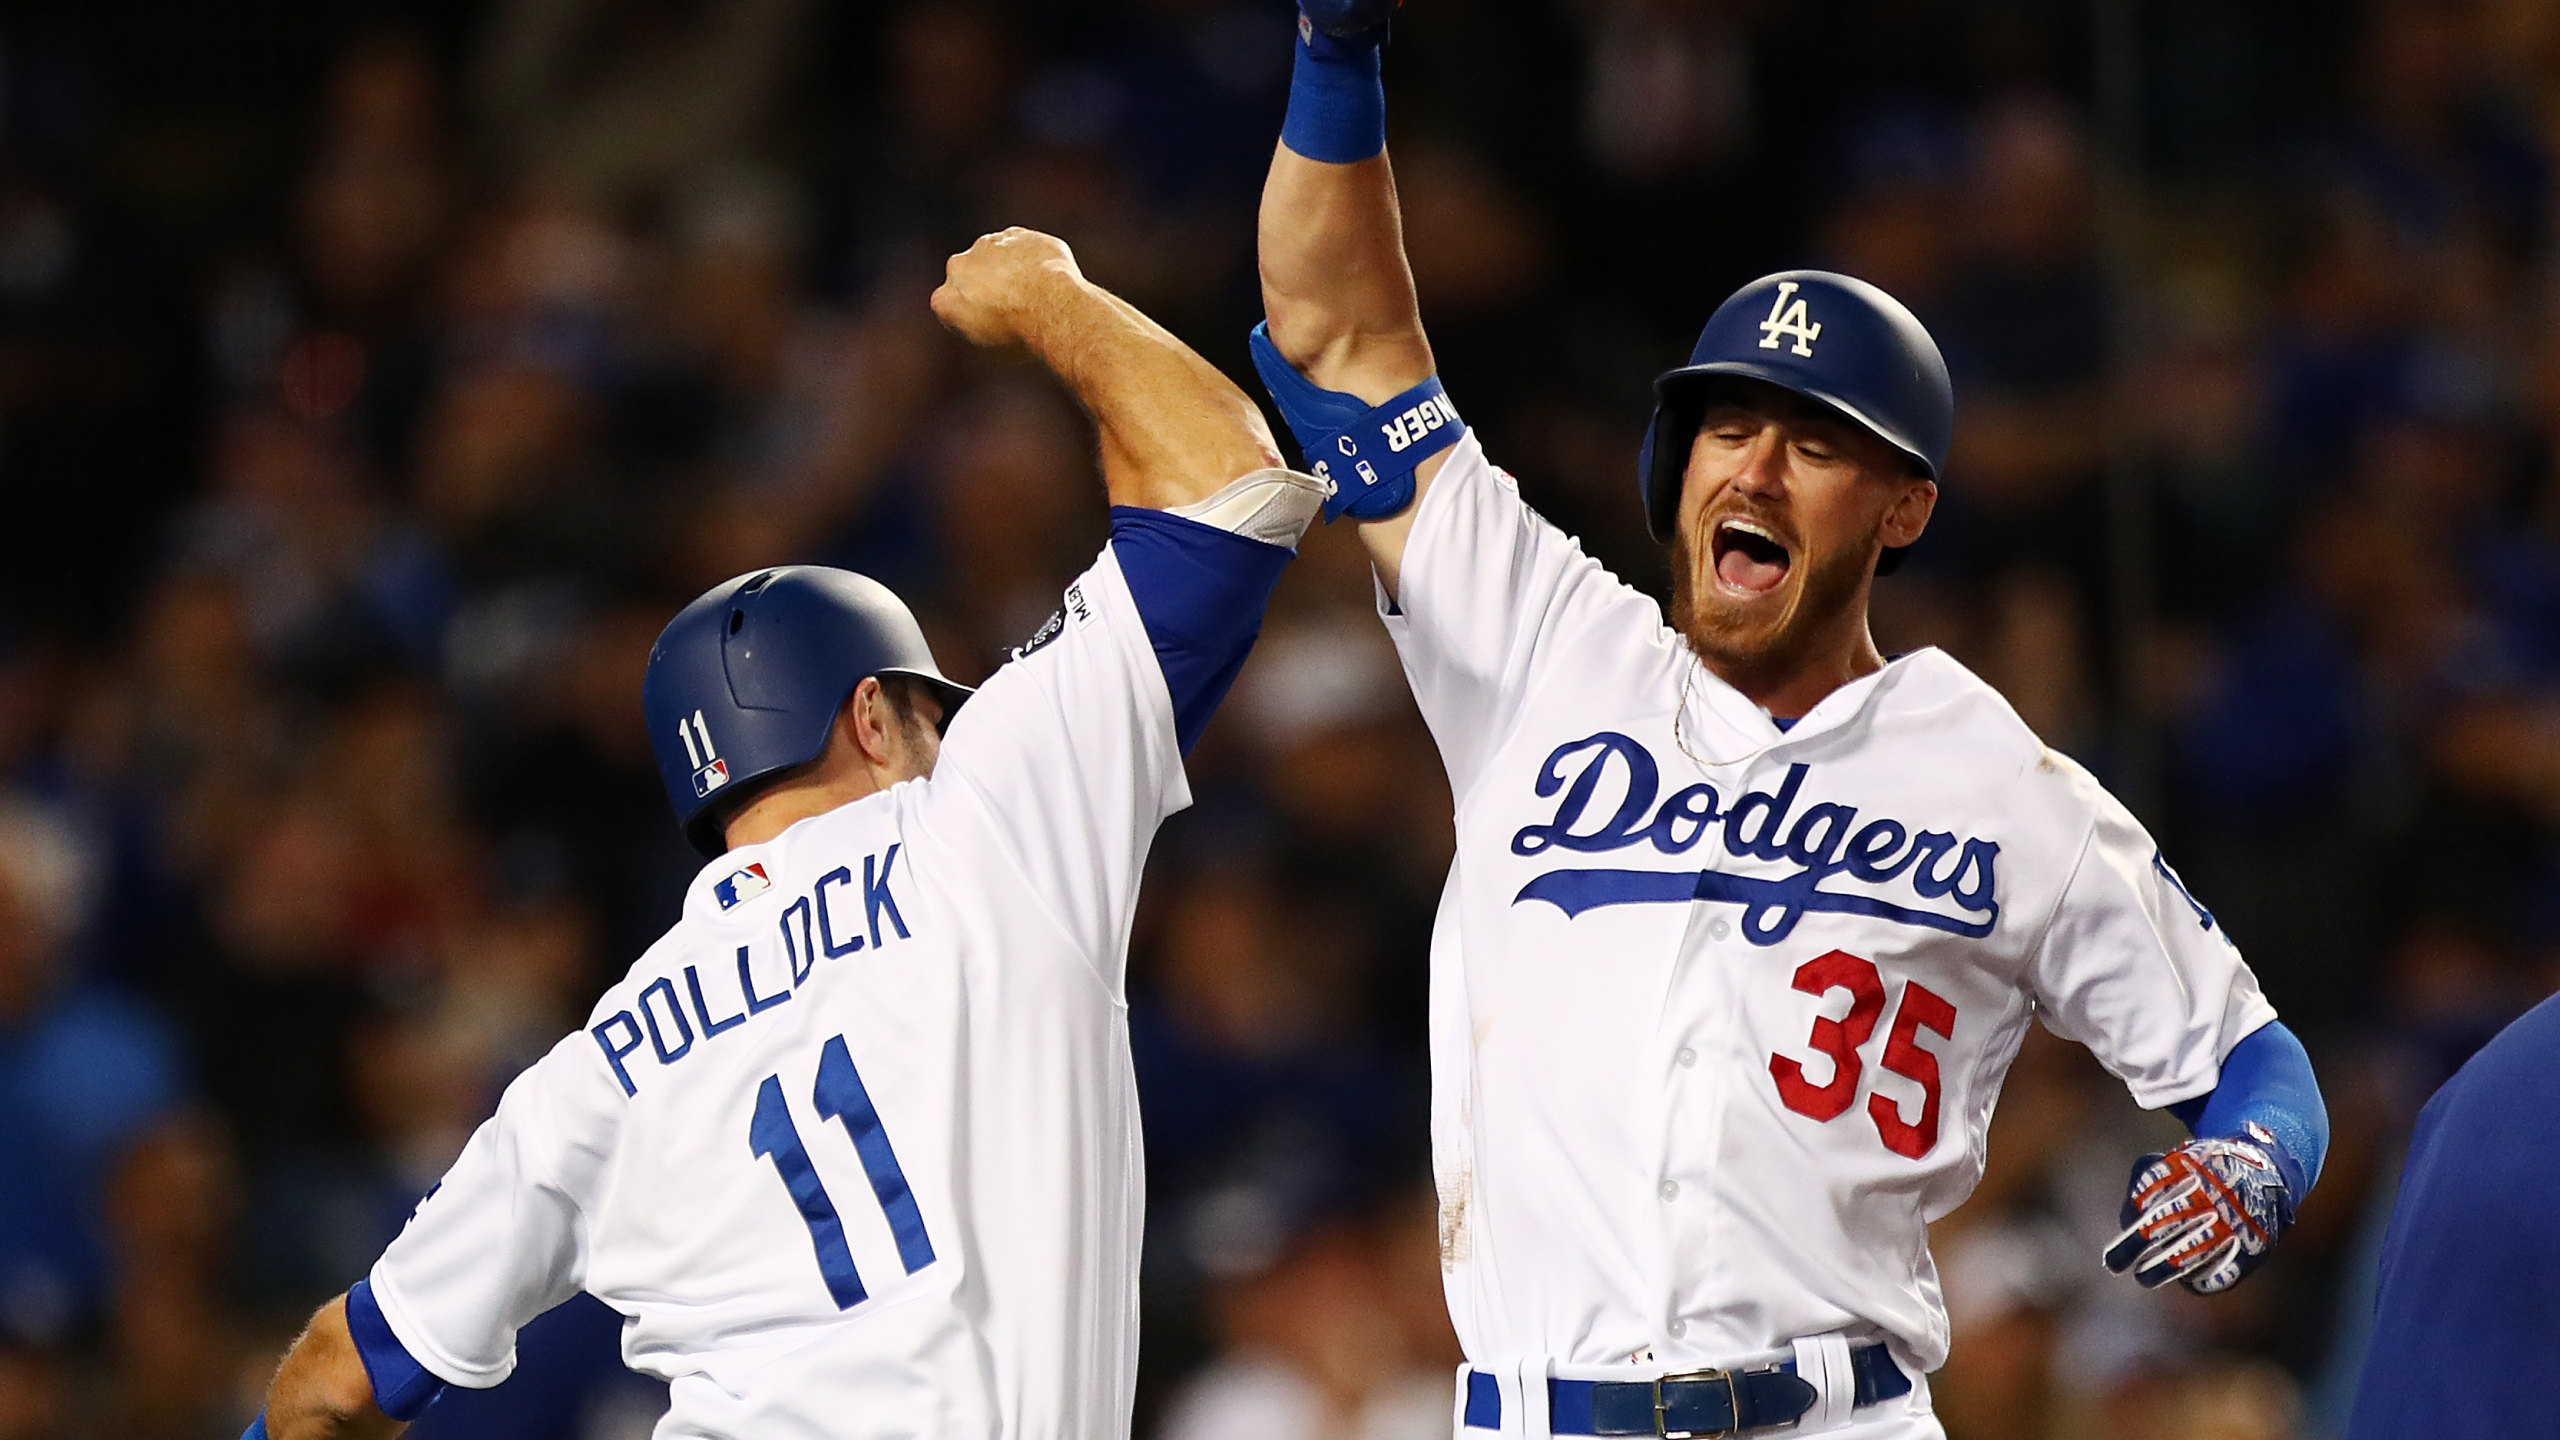 Cody Bellinger #35 of the Los Angeles Dodgers celebrates with A.J. Pollock #11 after hitting a grand slam against the San Francisco Giants during the third inning at Dodger Stadium on April 2, 2019. (Credit: Yong Teck Lim/Getty Images)